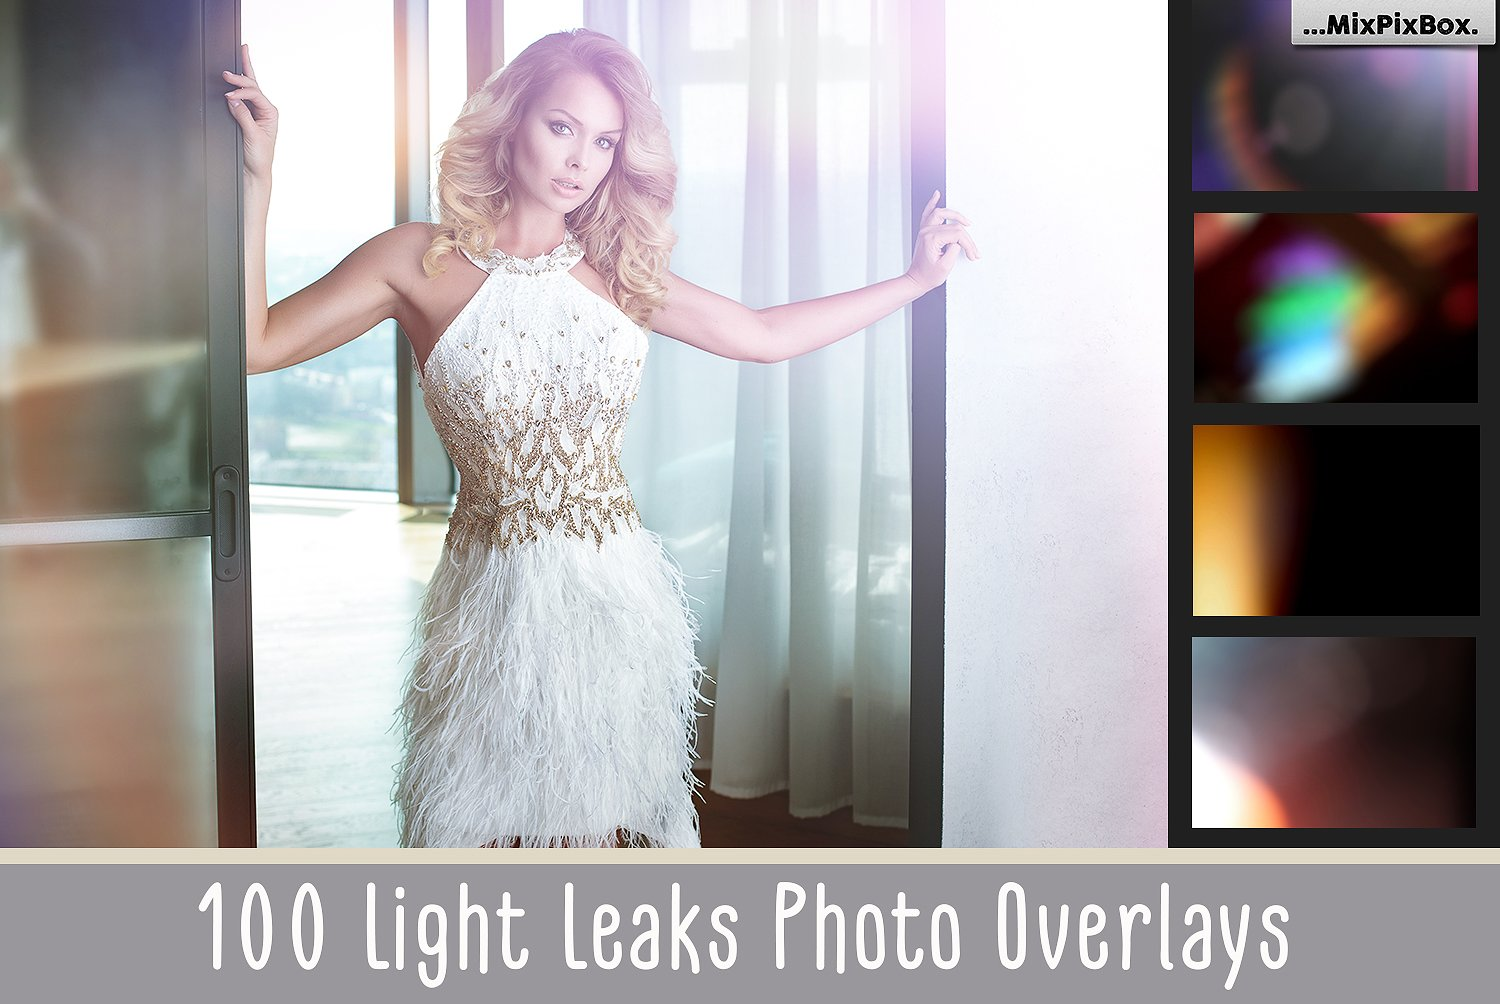 100 Light Leaks Photo Overlays